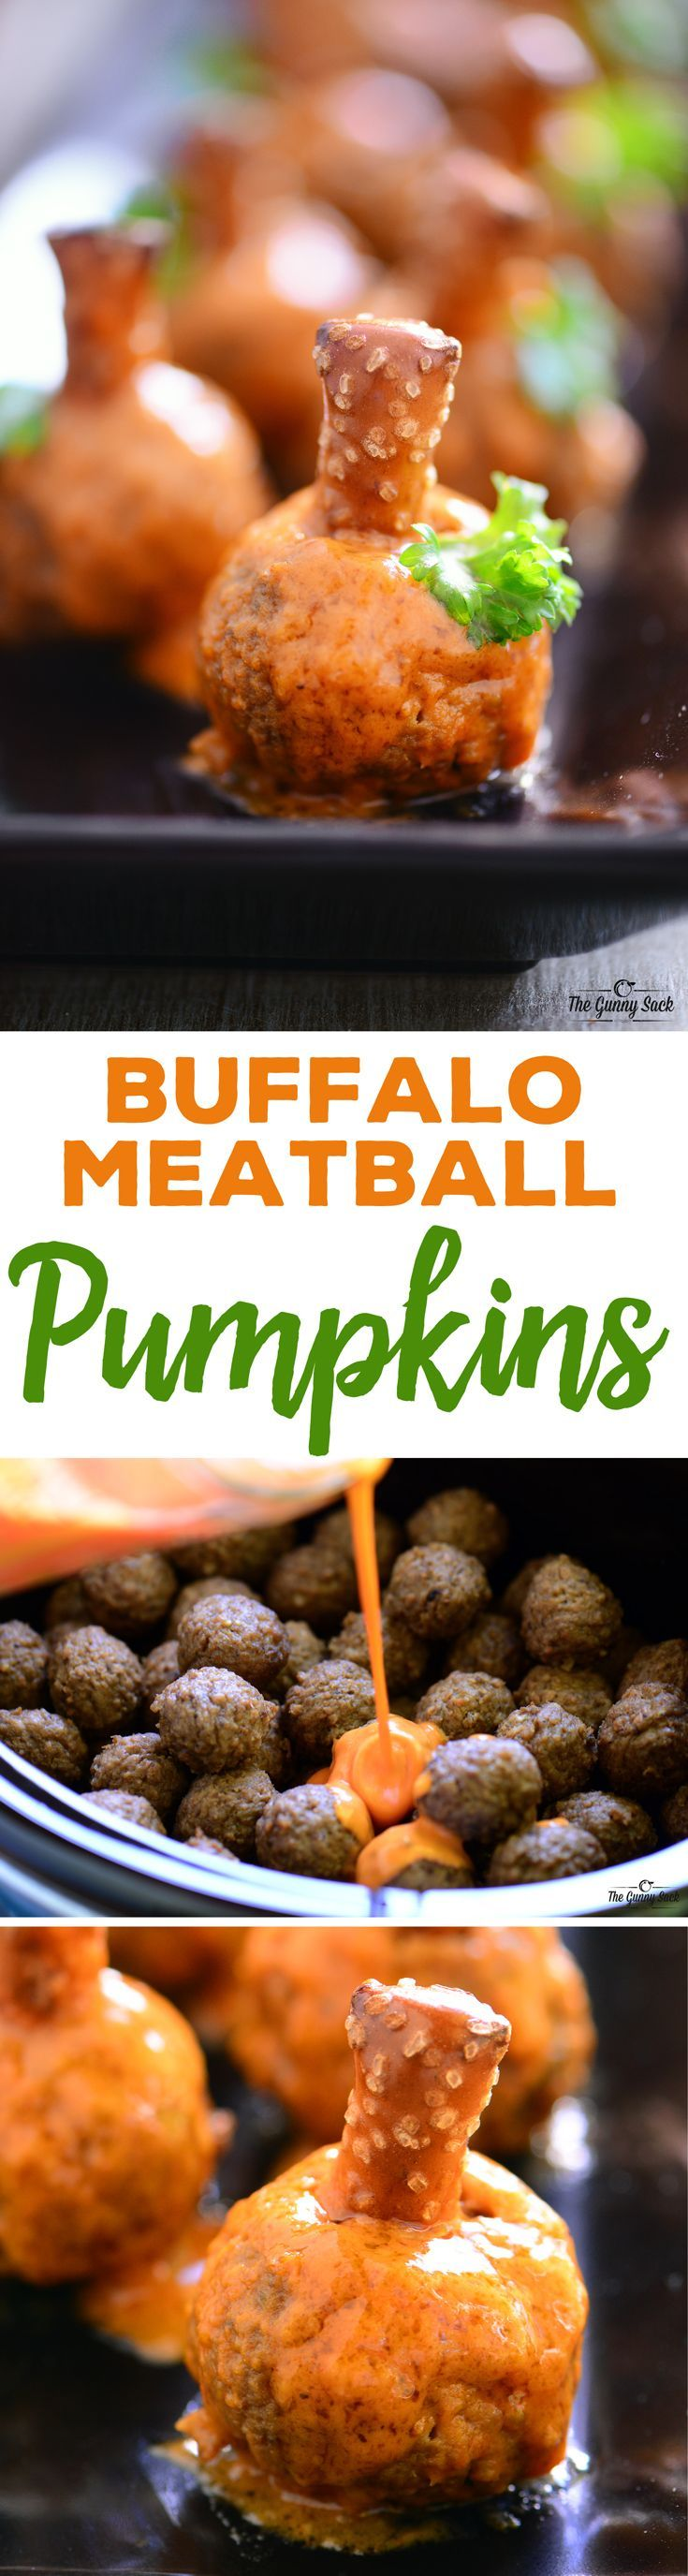 Looking for AWESOME Halloween recipes? Try these Buffalo Meatball Pumpkins for your fall parties. They have a pretzel stem, parsley leaf and buffalo sauce. #sponsored